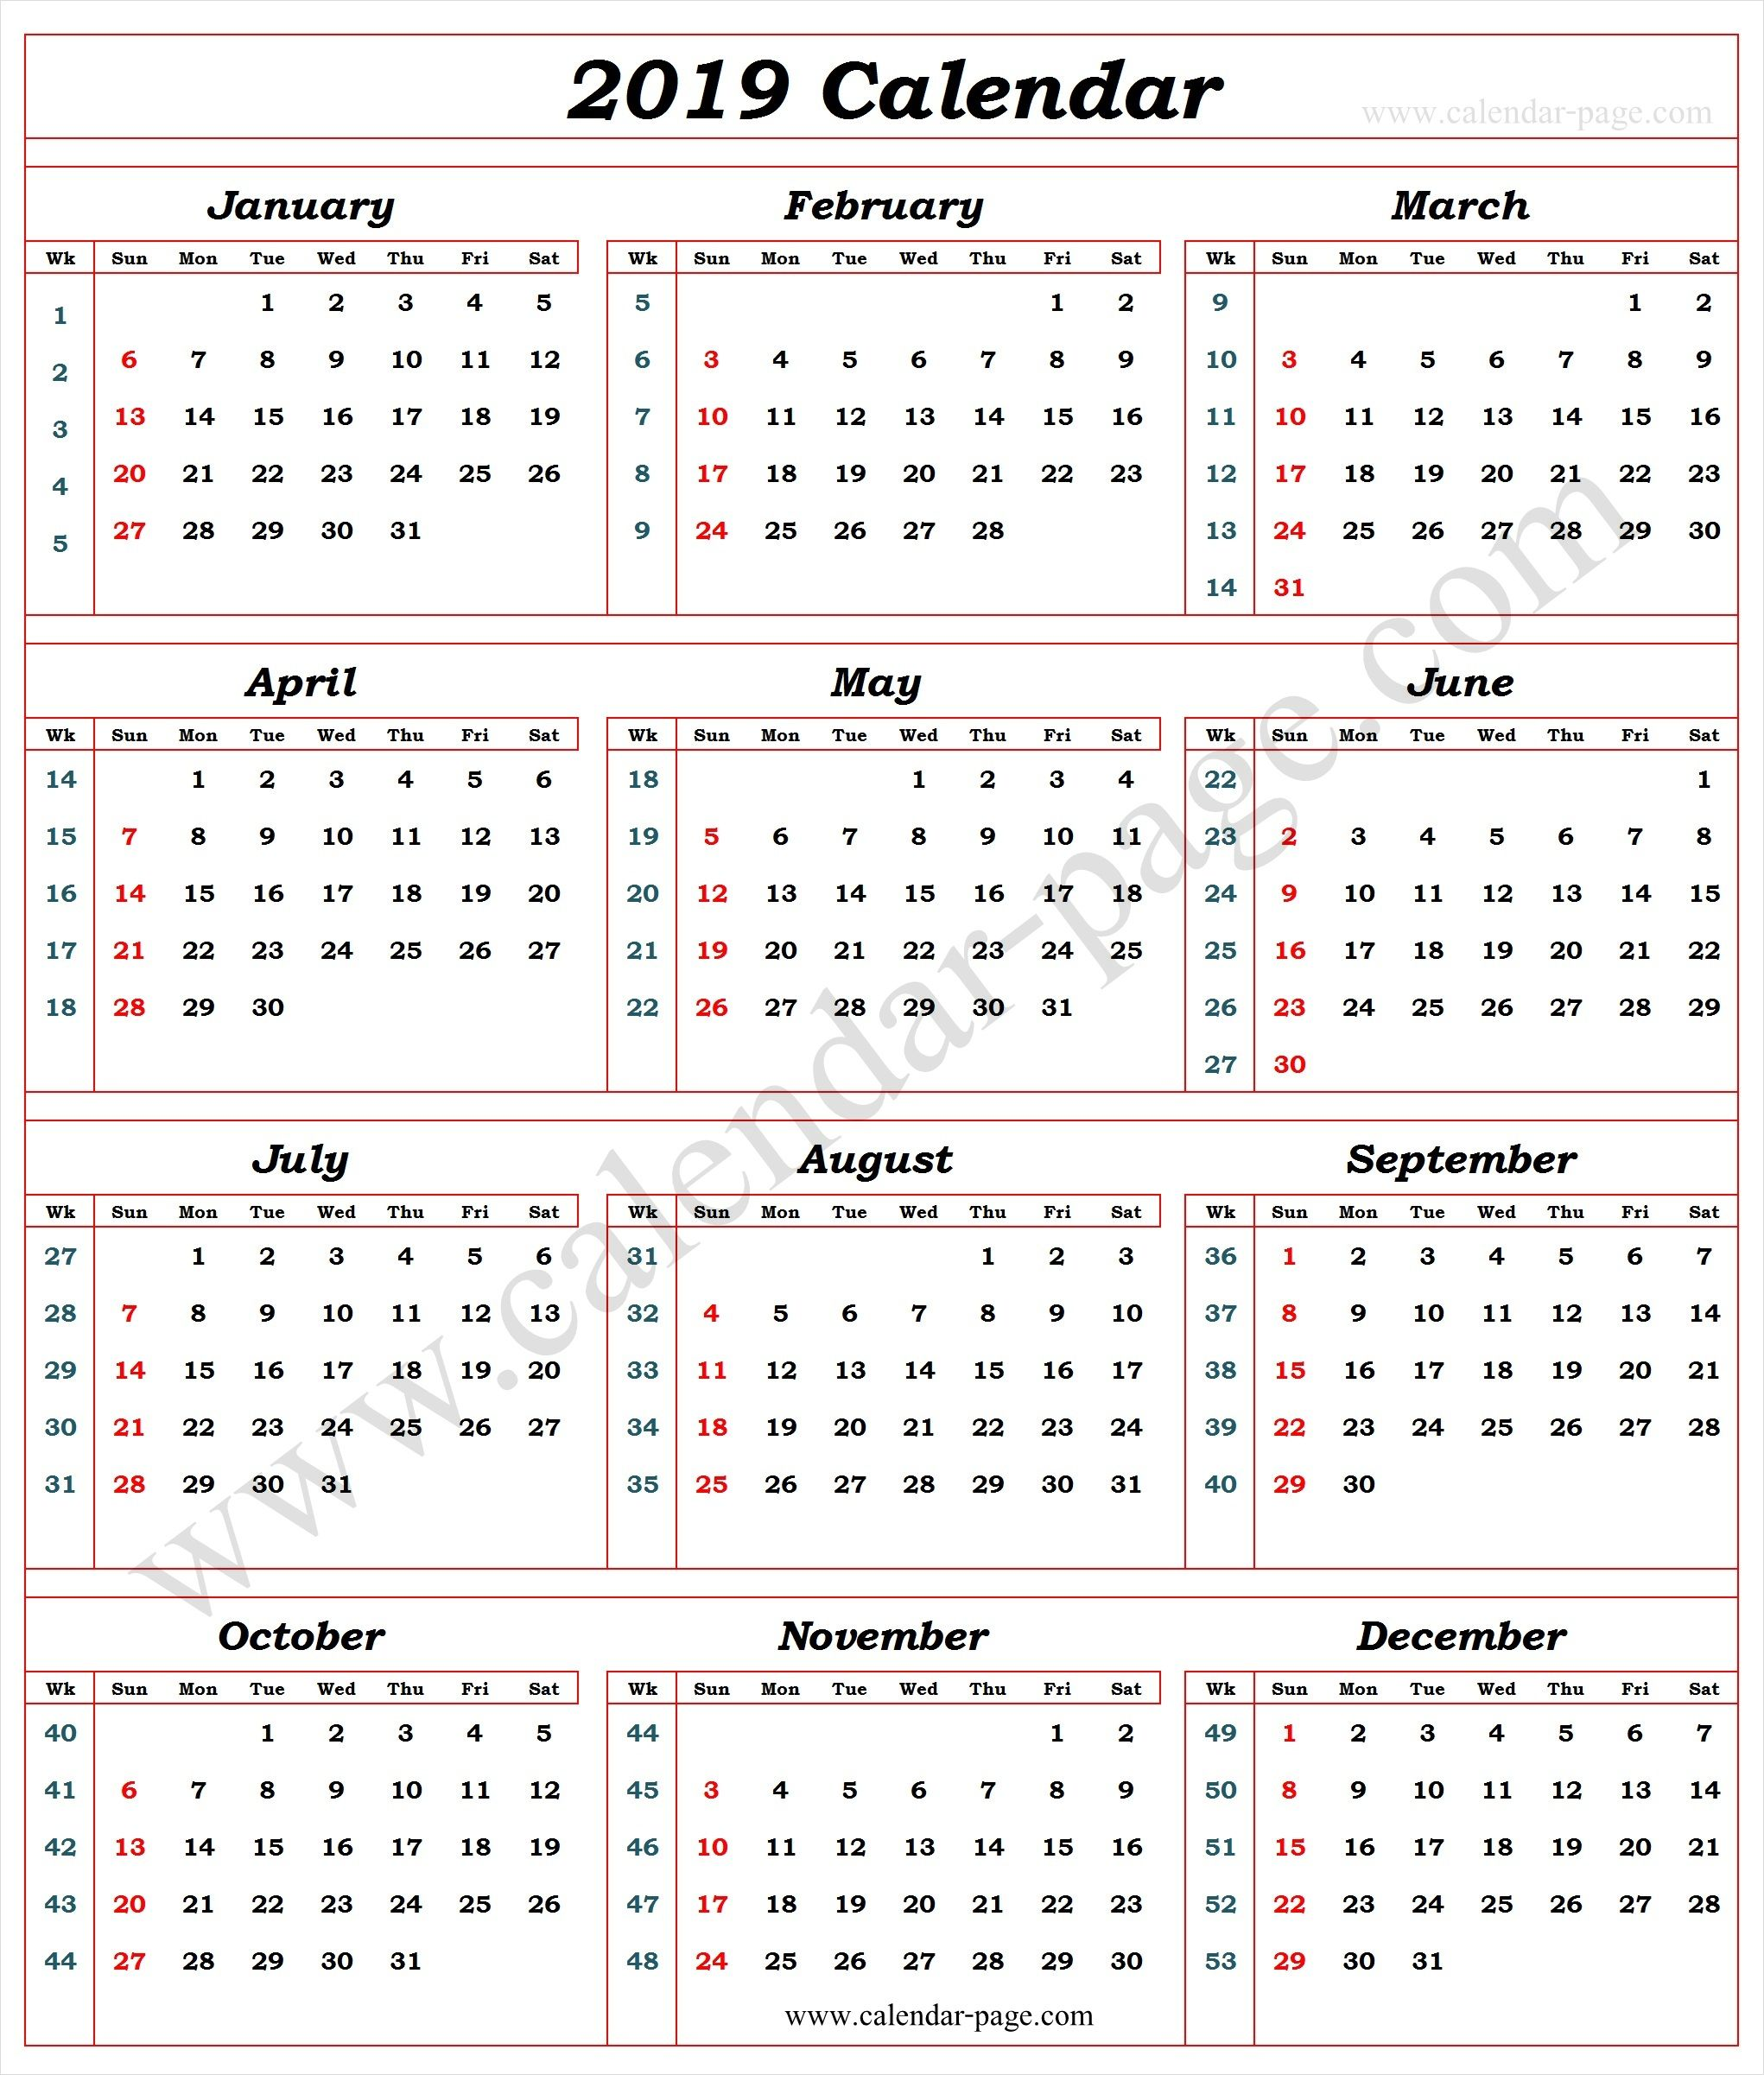 Calendar 2019 With Week Numbers Calendar 2019 With Week Numbers | 2019 Calendar Template